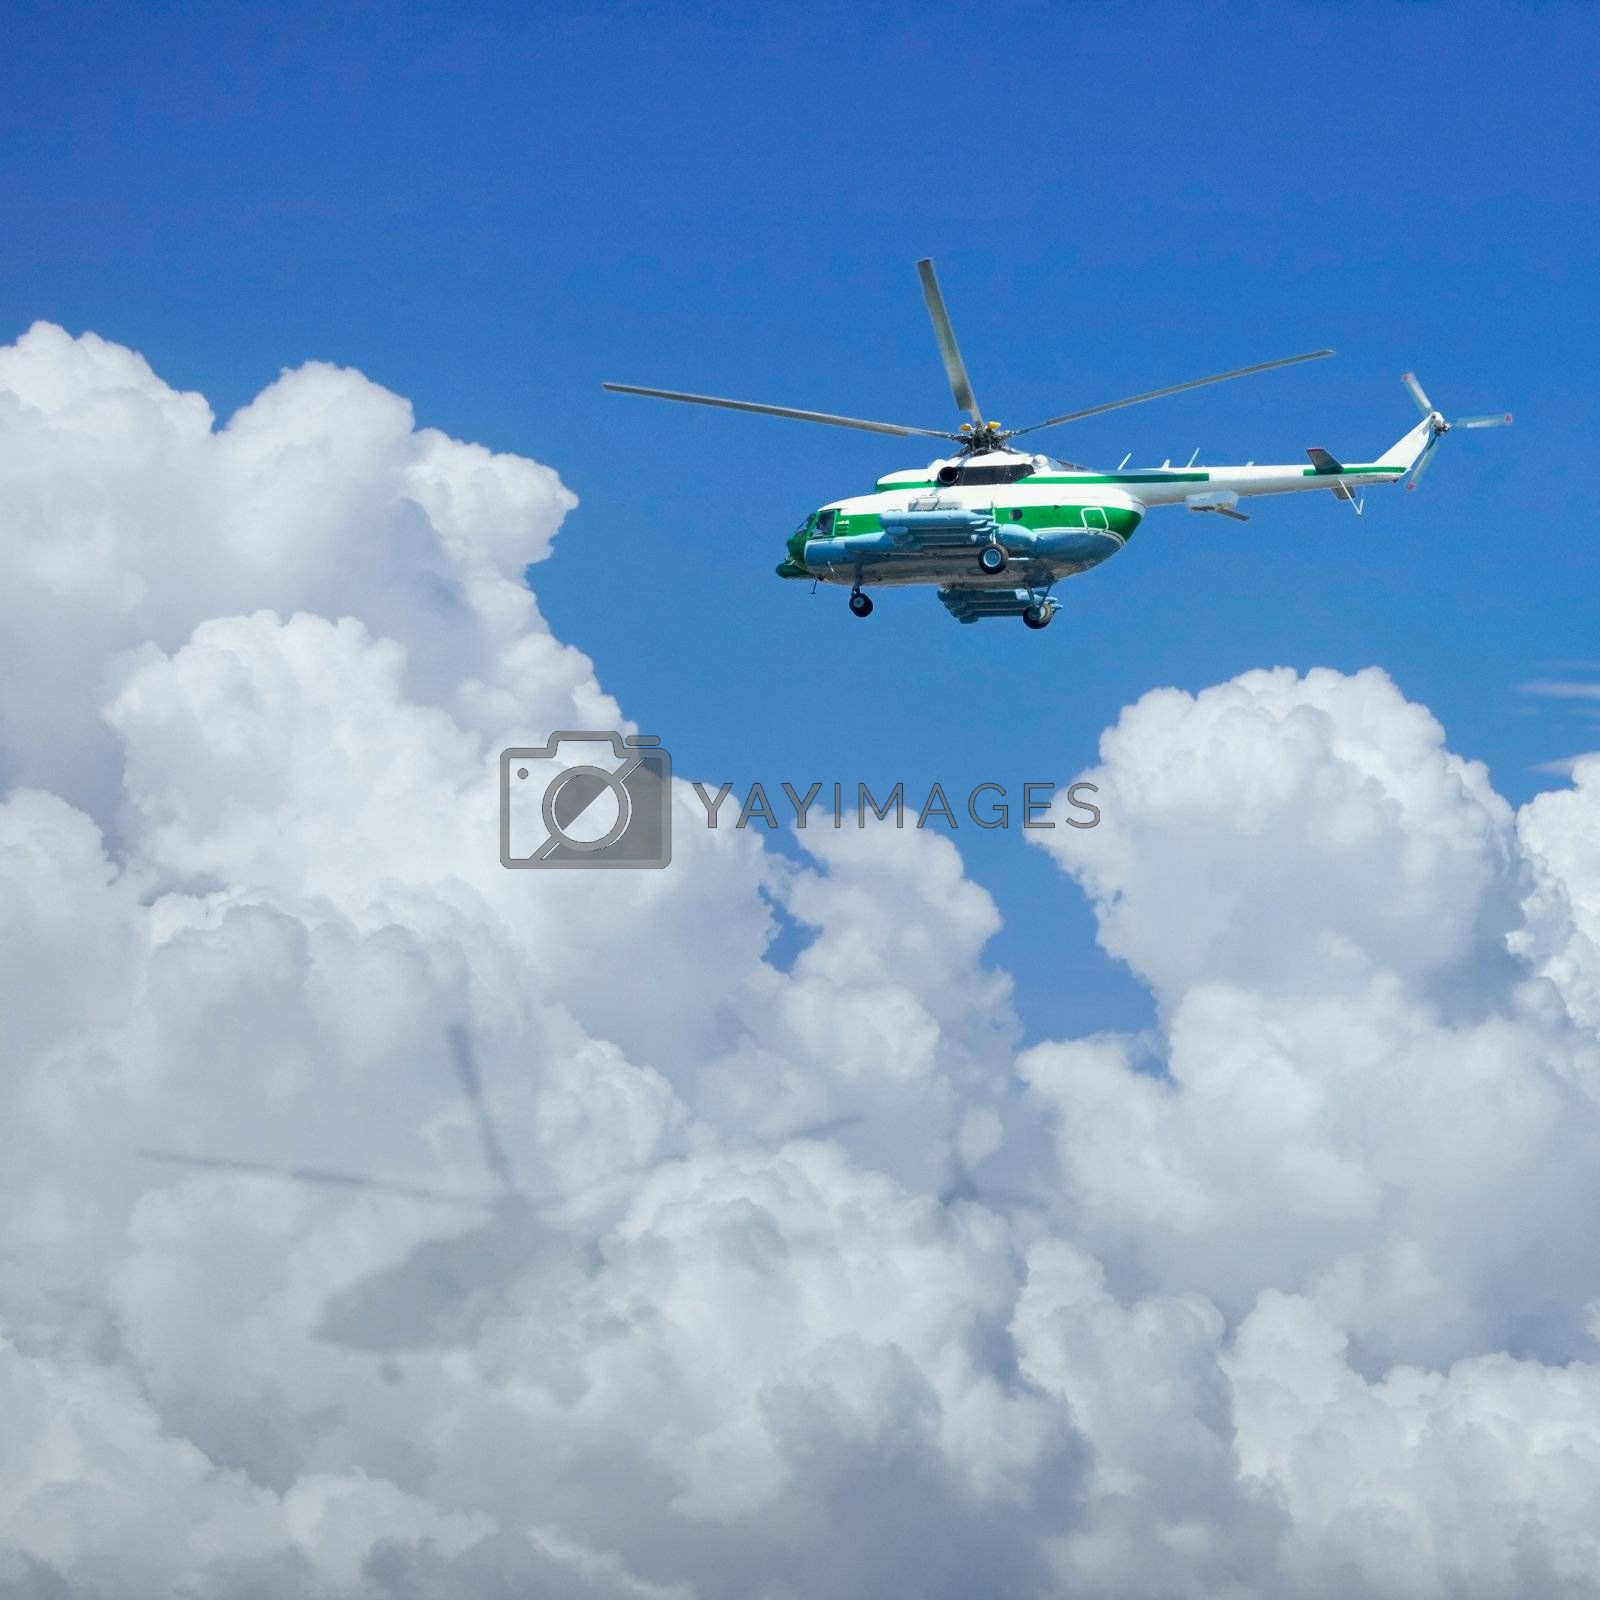 The helicopter is flying above the clouds